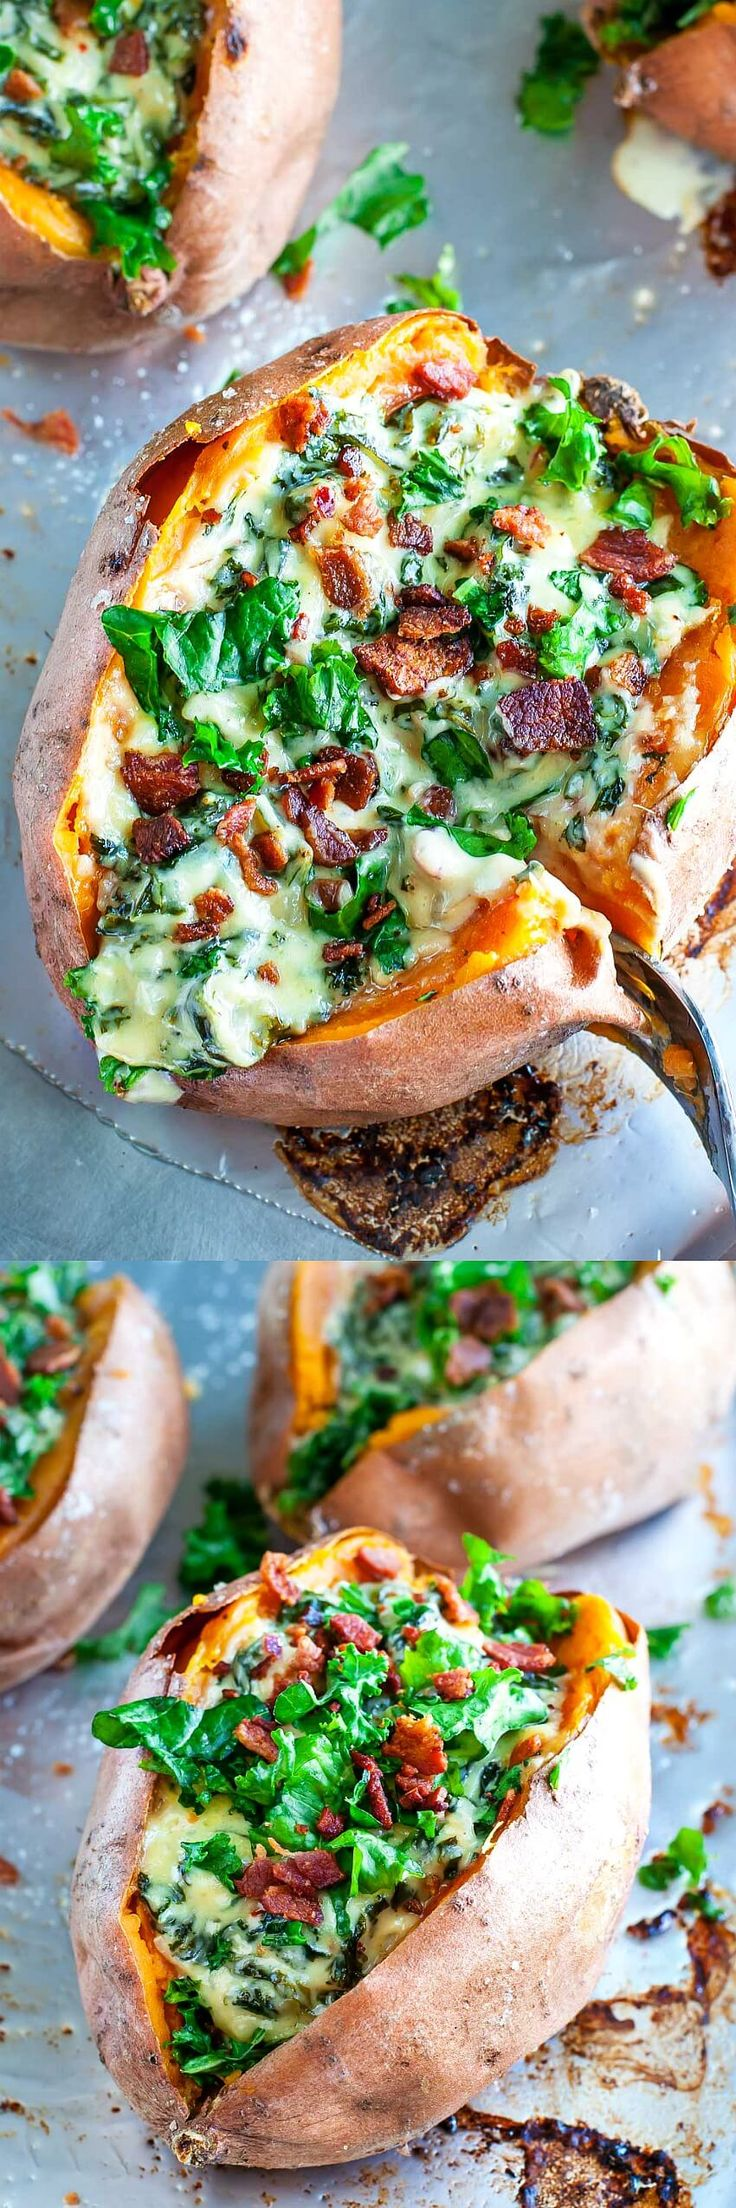 These easy Cheesy Kale Stuffed Sweet Potatoes are a tasty way to pile on the veggies! (Homemade Cheese Vegan)